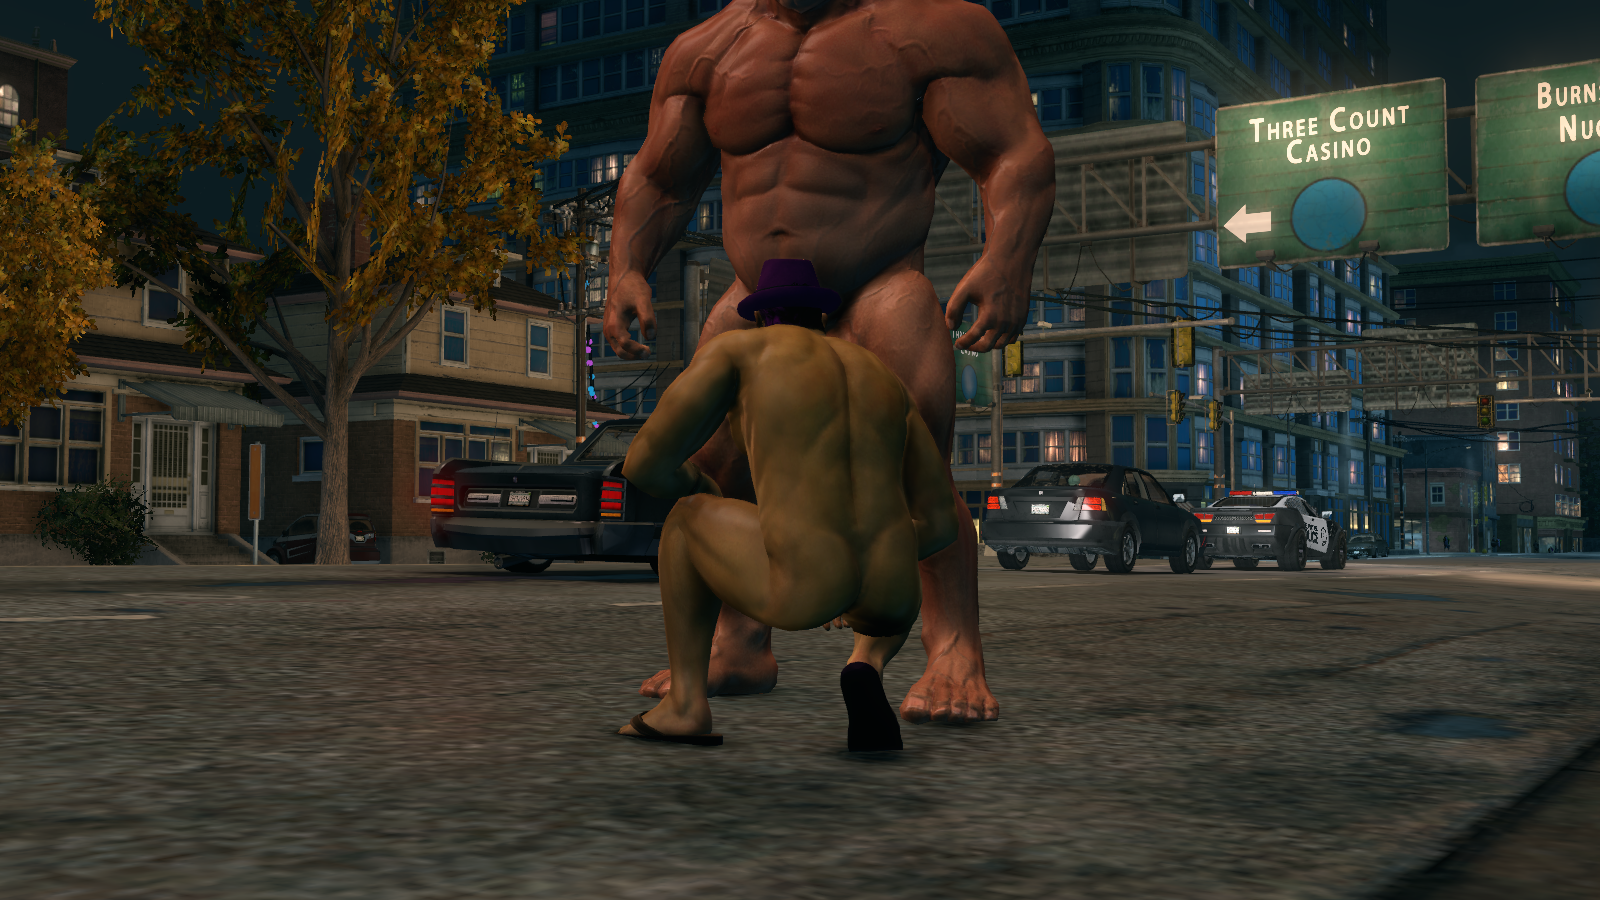 Saints row 2 sex mod nackt clip